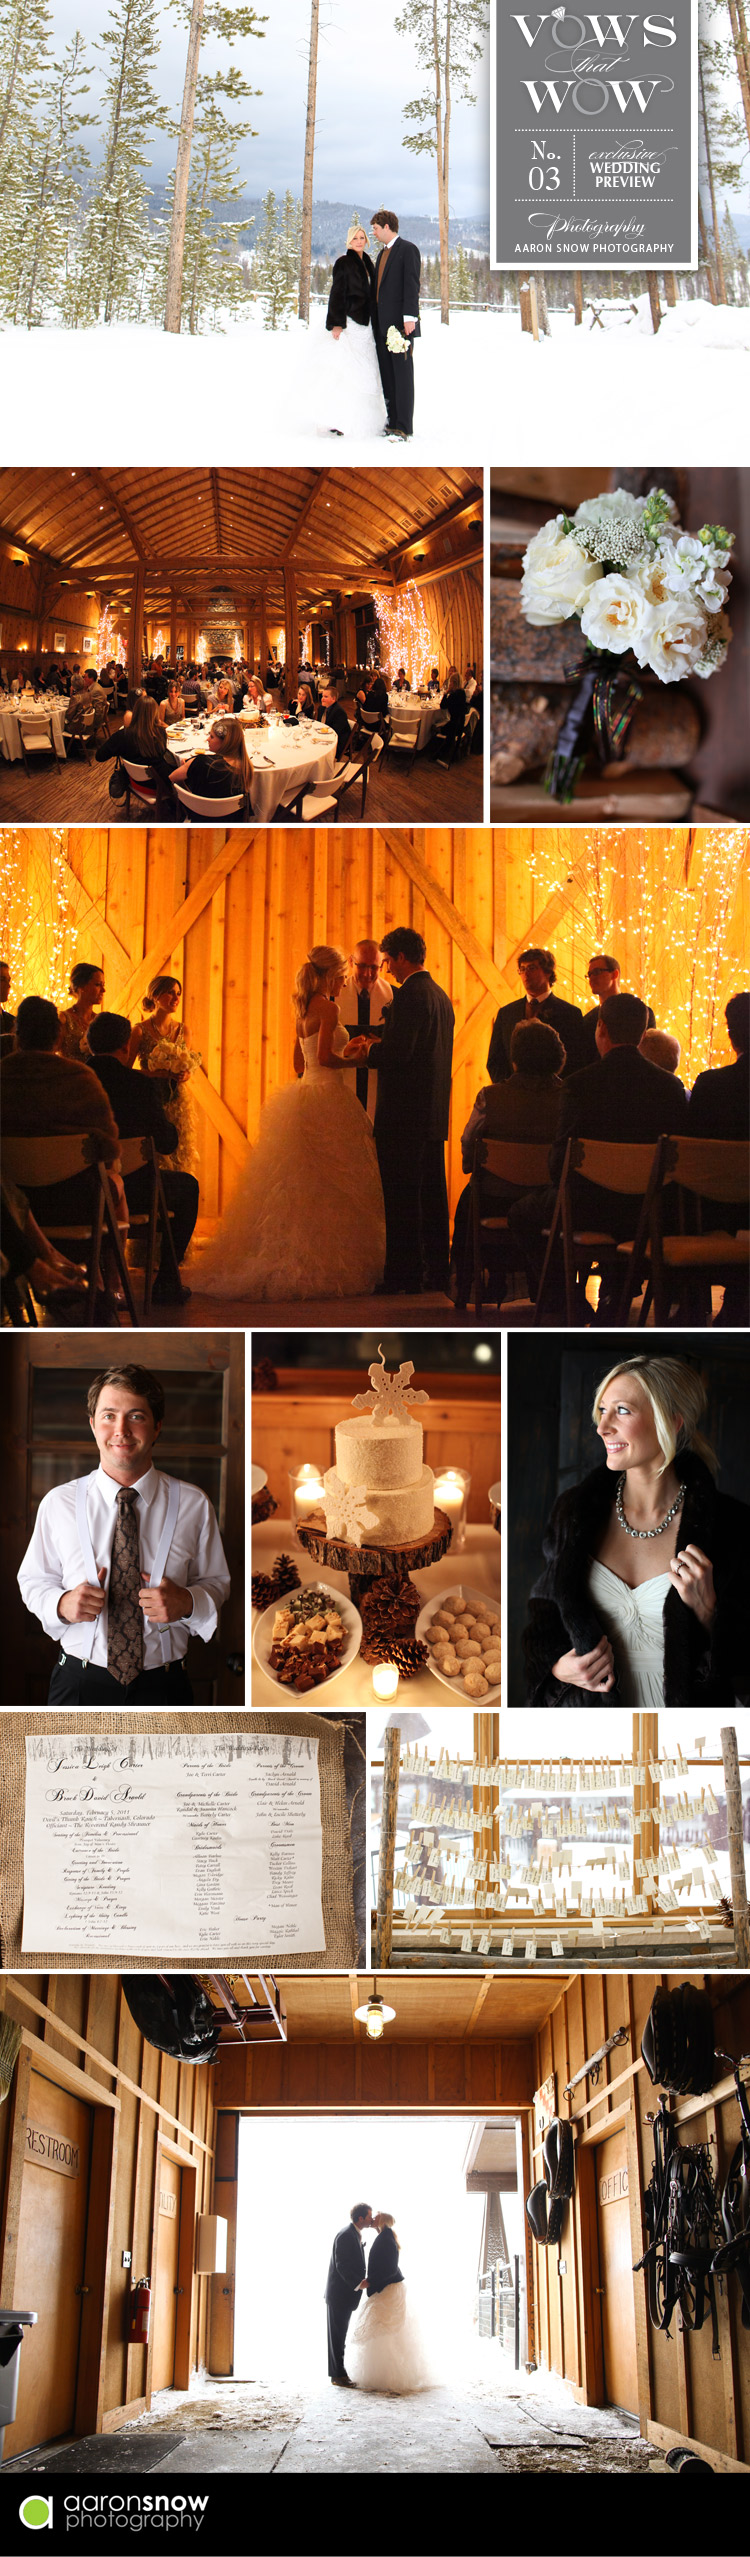 Vows that Wow - Jessi and Brian - Aaron Snow Photography